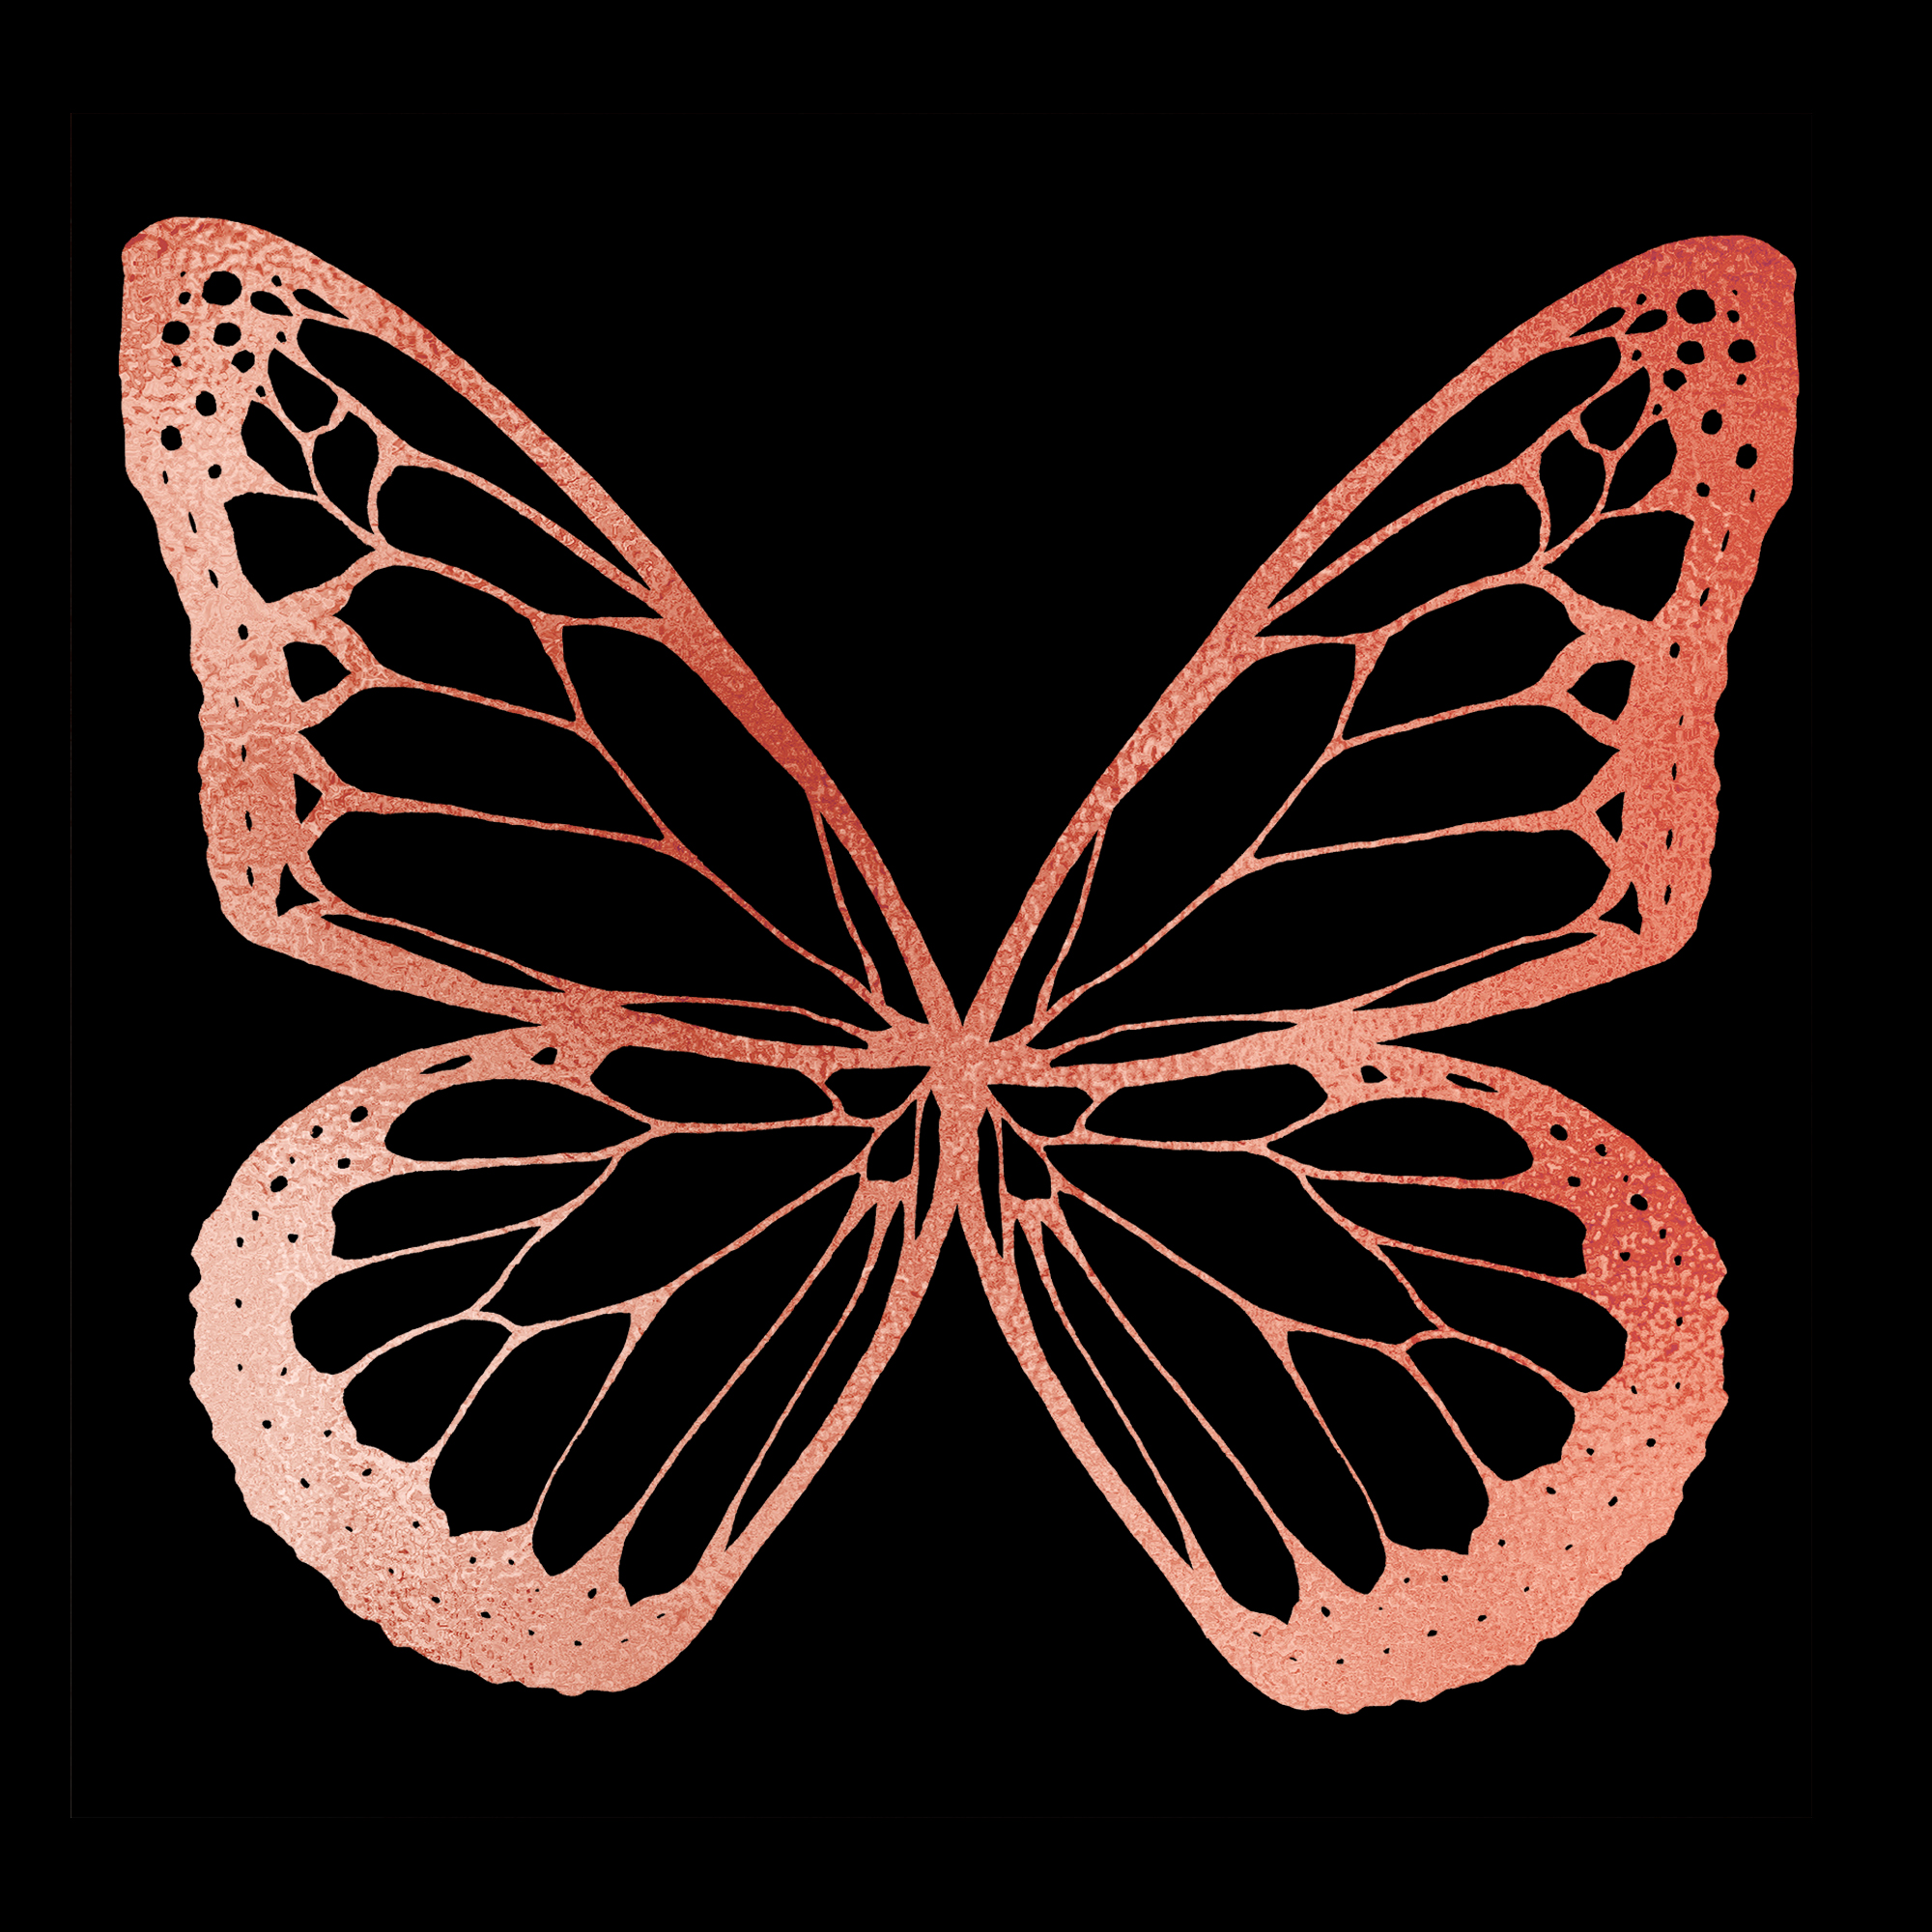 Brazzlebird - Rose Gold Butterfly on Black Print